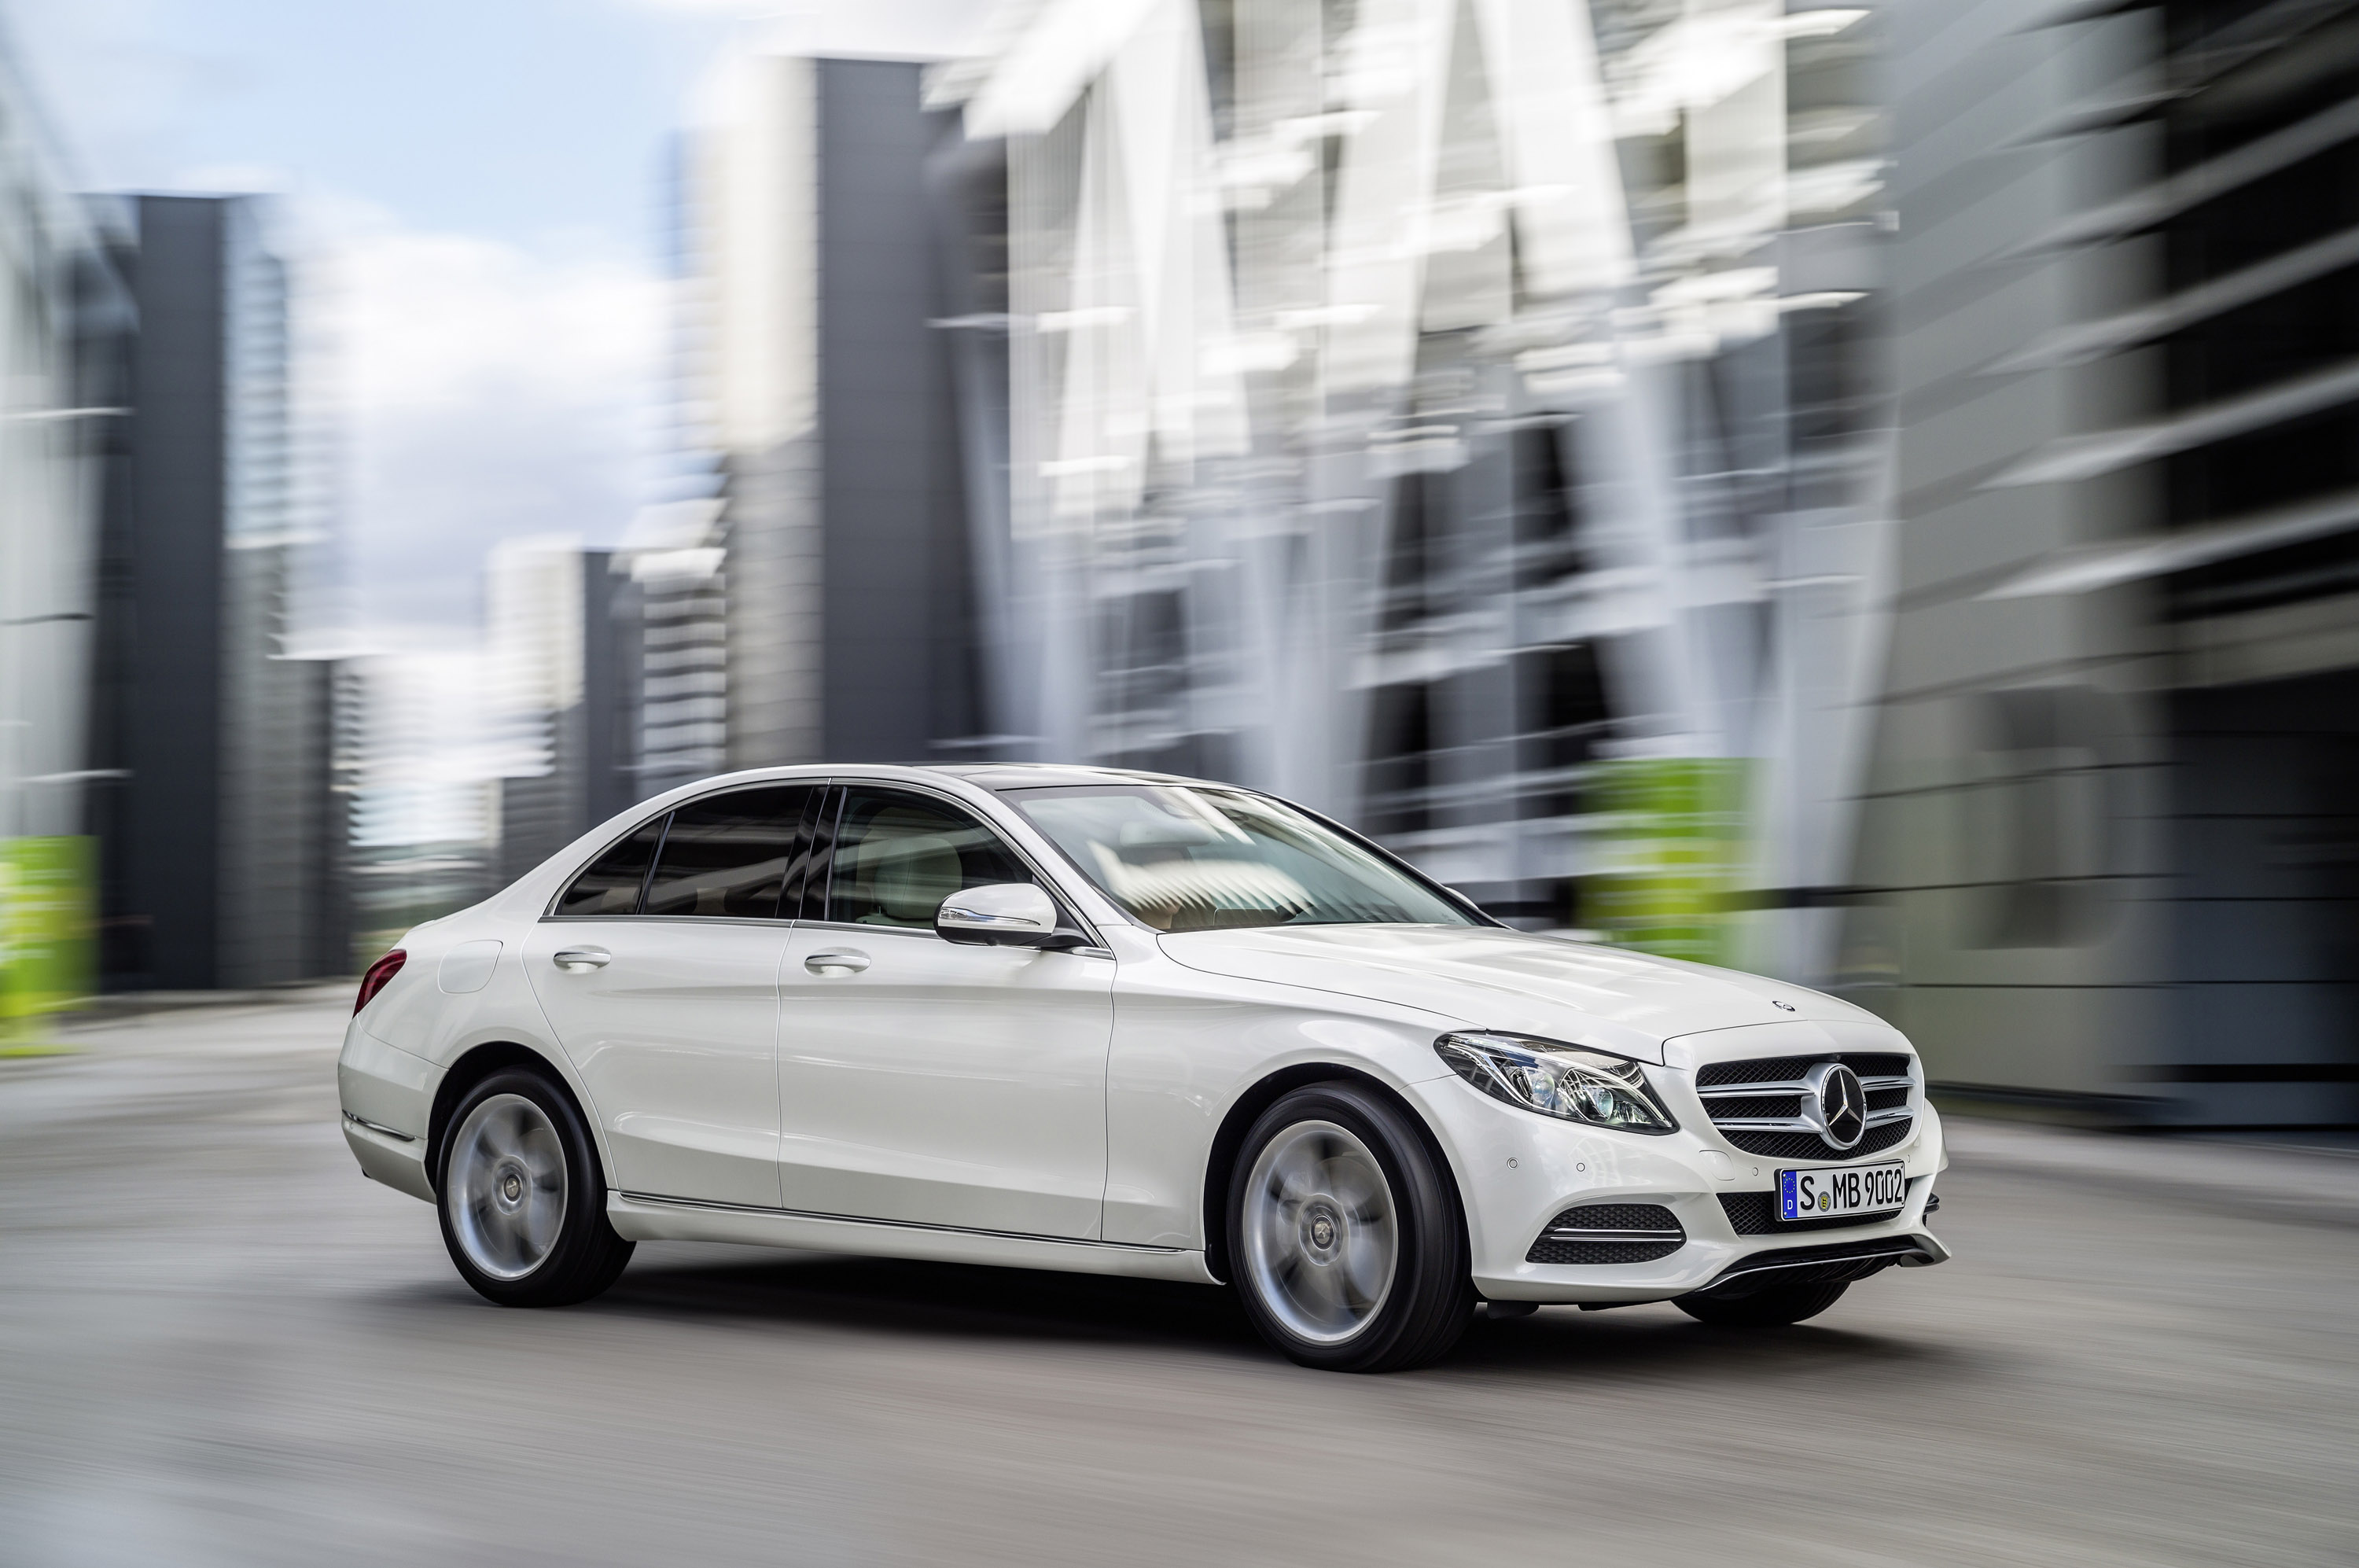 2015 mercedes benz c class sedan us pricing announced for Mercedes benz class 2015